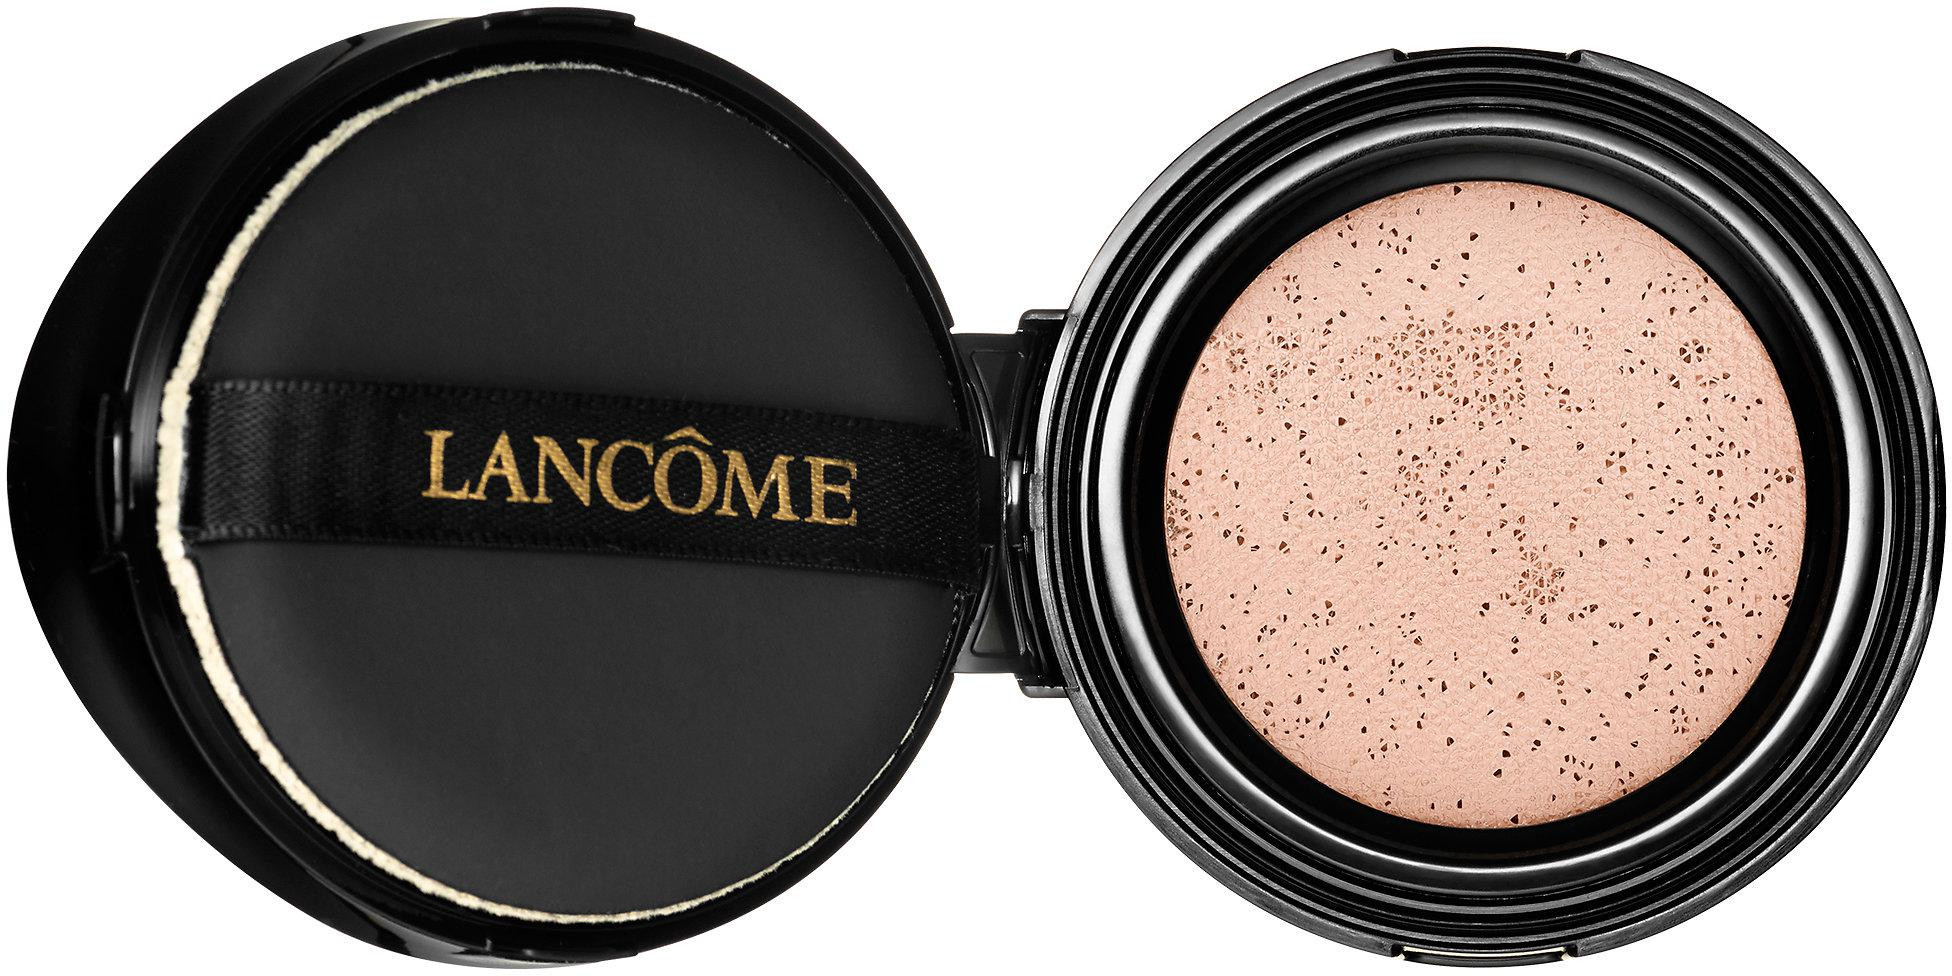 Lancome Teint Idole Ultra Longwear Cushion Foundation (886 грн)